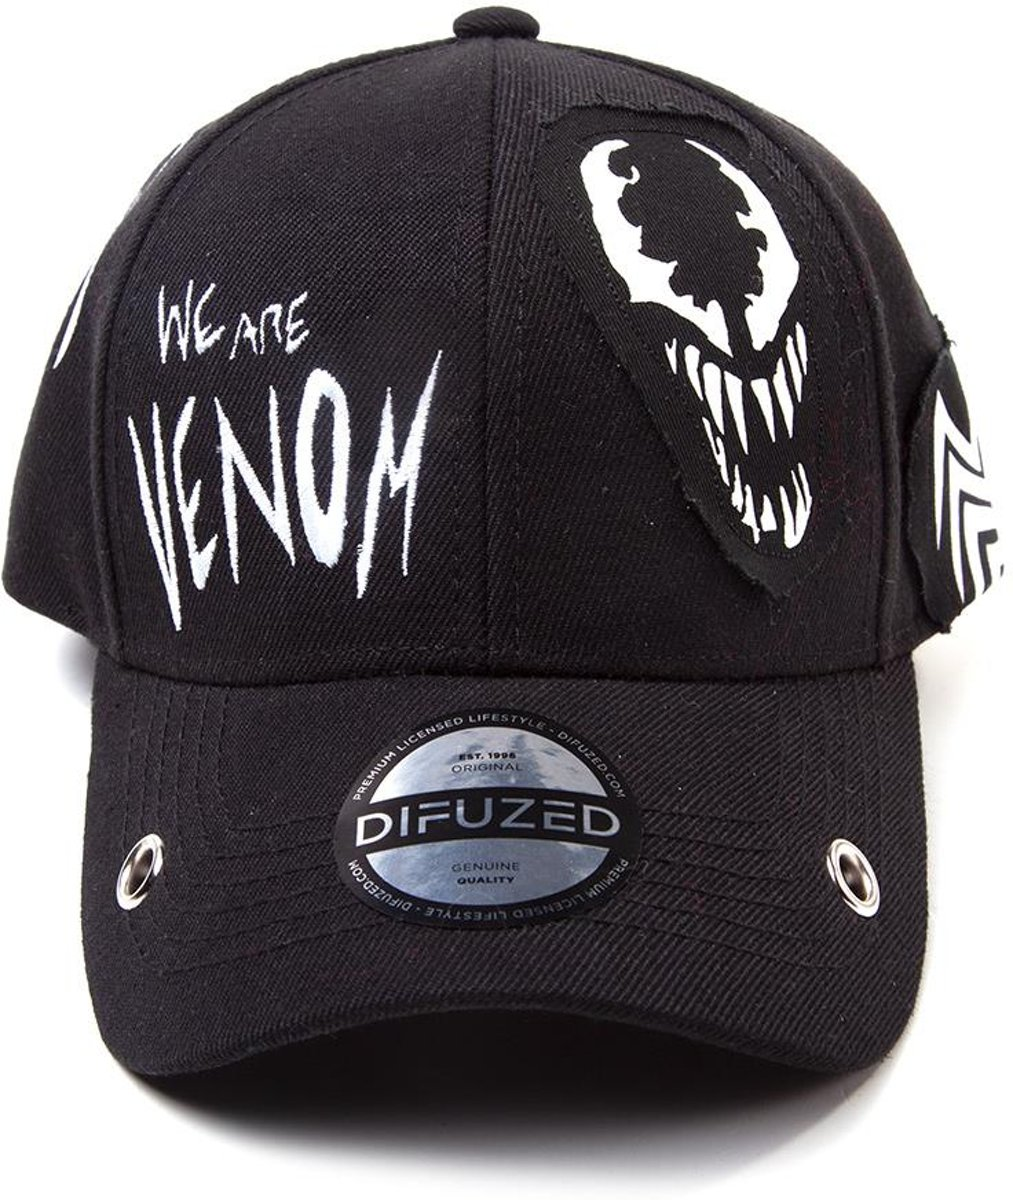 Marvel - Venom Grunge Cap With Patches